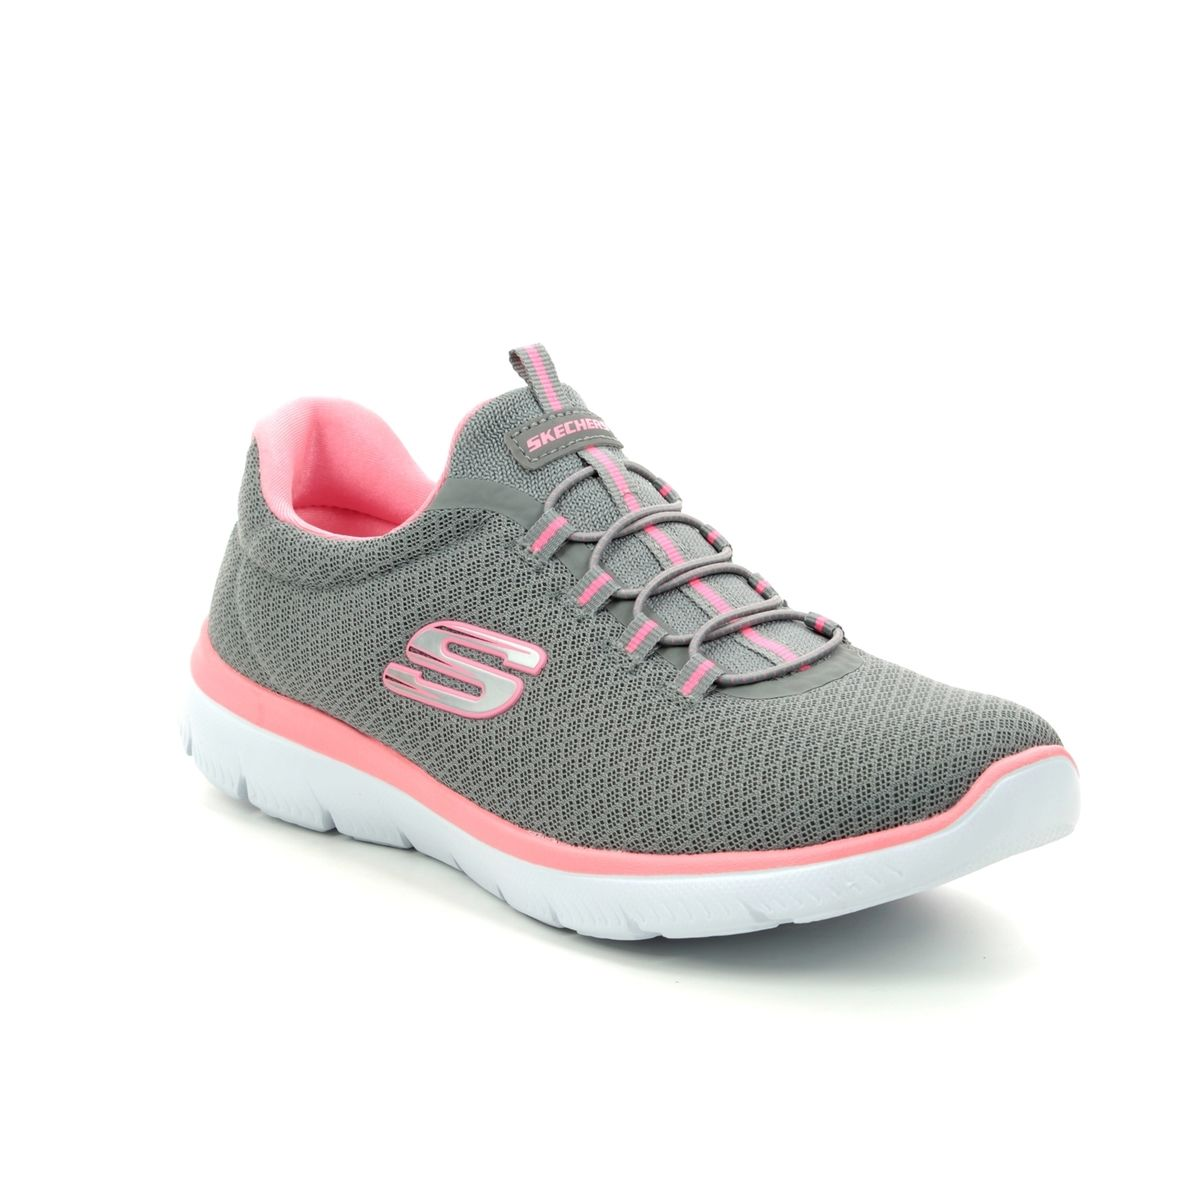 skechers trainers pink \u003e Factory Store